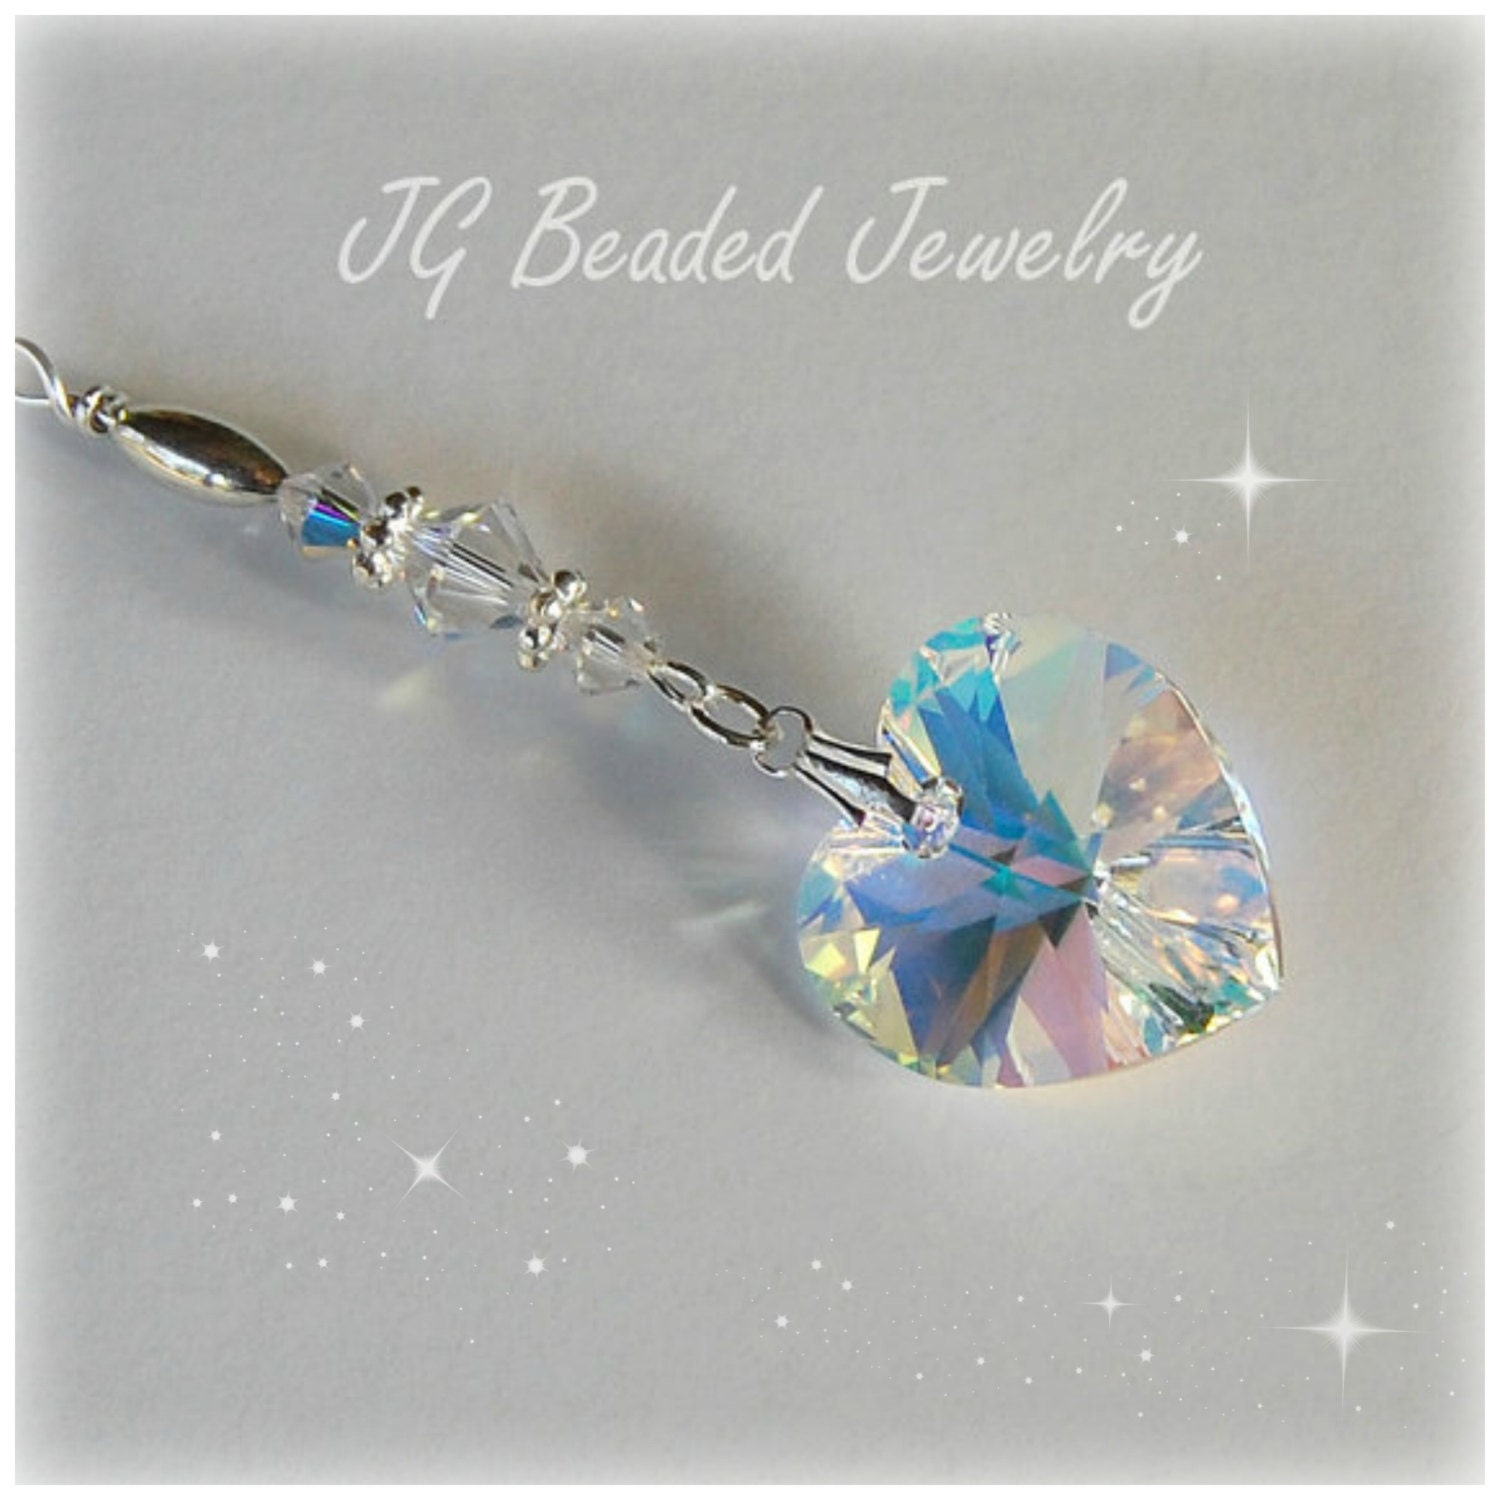 Swarovski Crystal Heart Rearview Mirror Car Charm Hanging